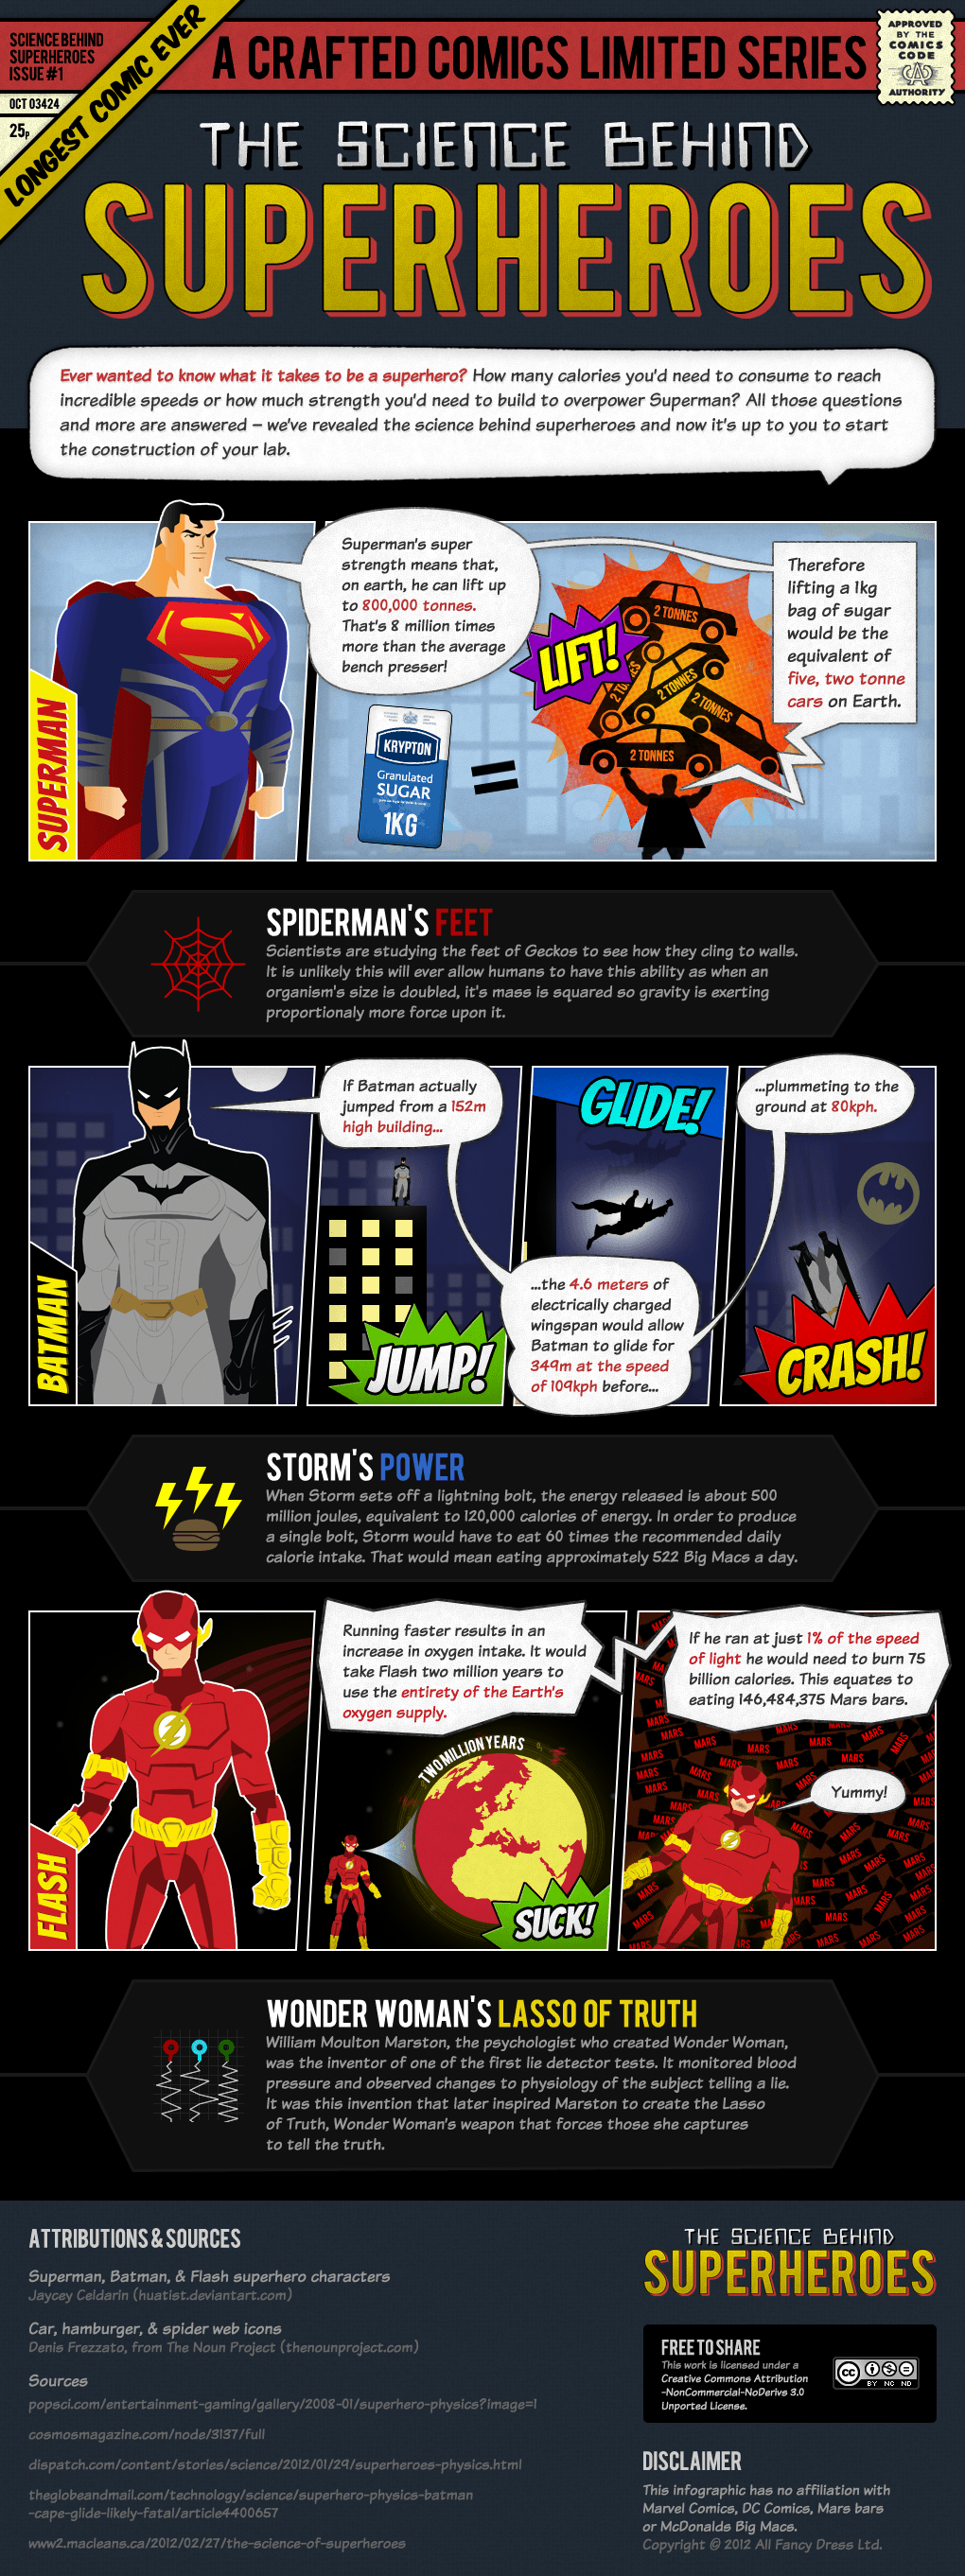 The Science Behind the Superheroes